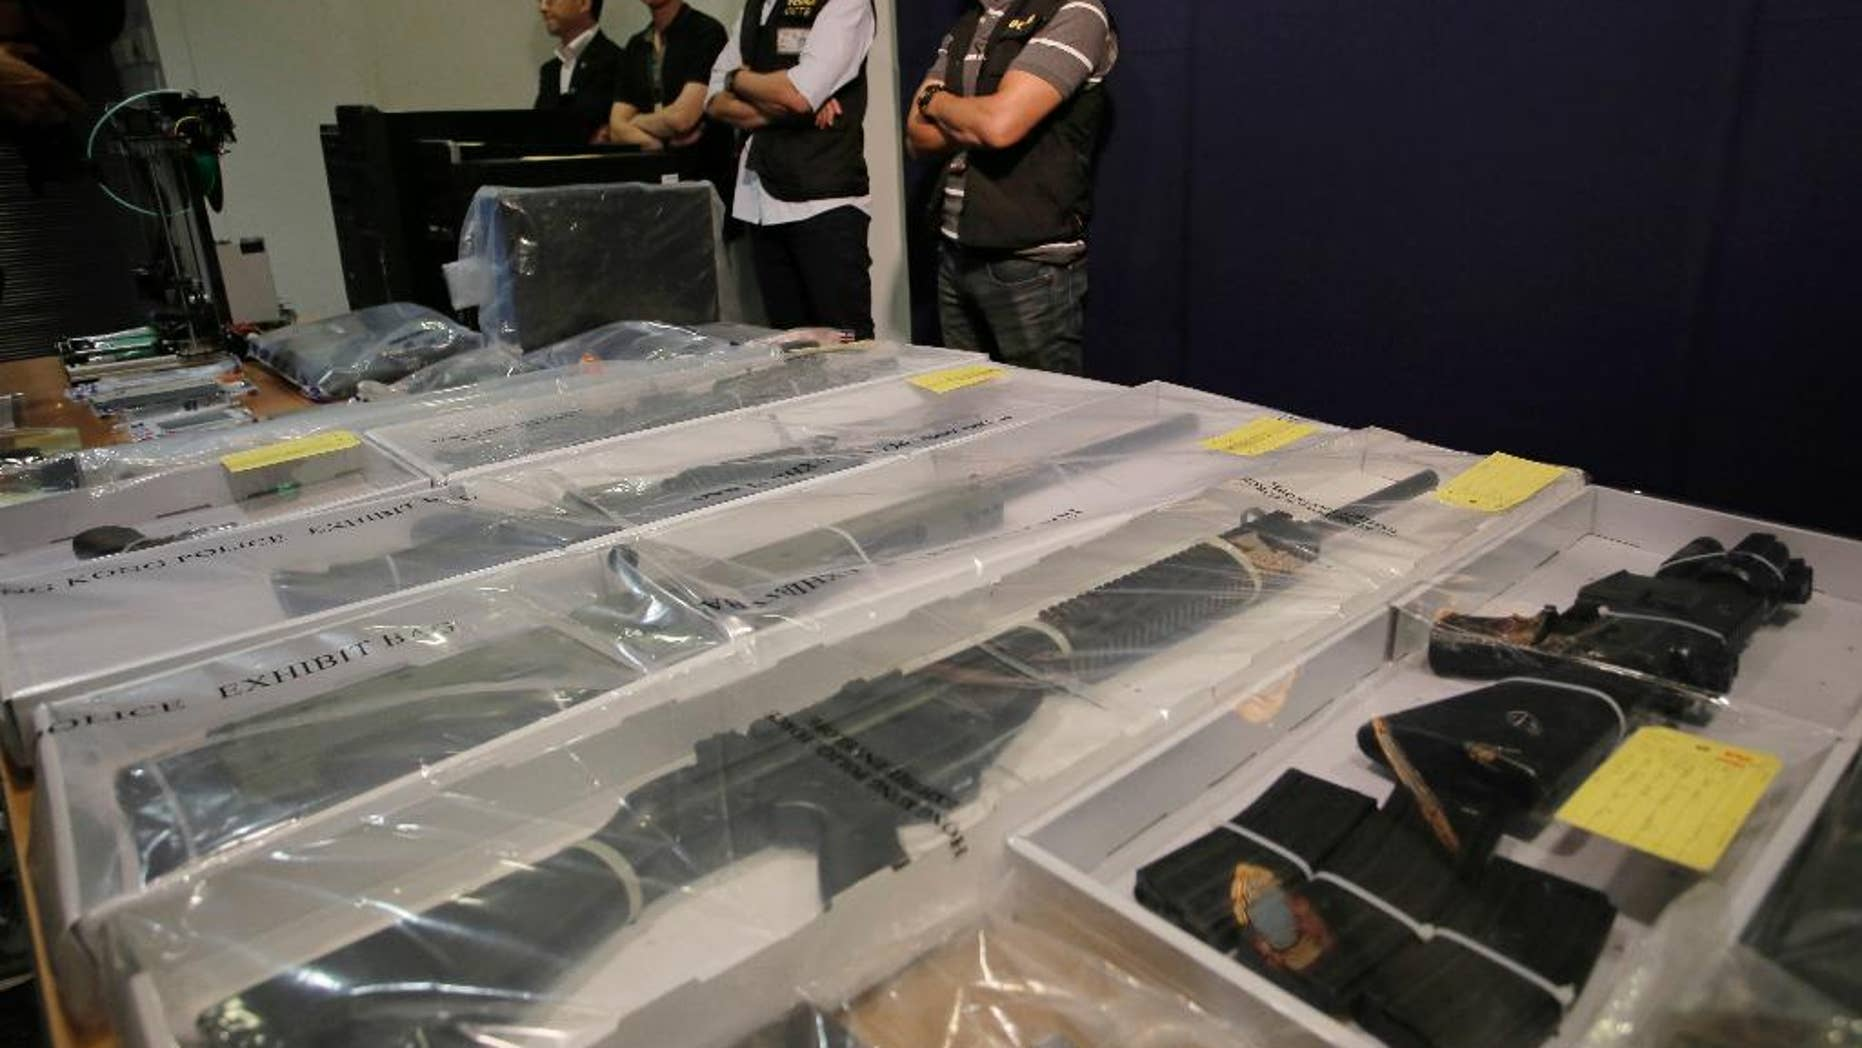 Plain clothed policemen stand guard in front of some air rifles and other evidences during a press conference in Hong Kong, Monday, June 15, 2015. Hong Kong police say they have arrested nine people, members of a local radical group and seized materials for making explosives. (AP Photo/Vincent Yu)